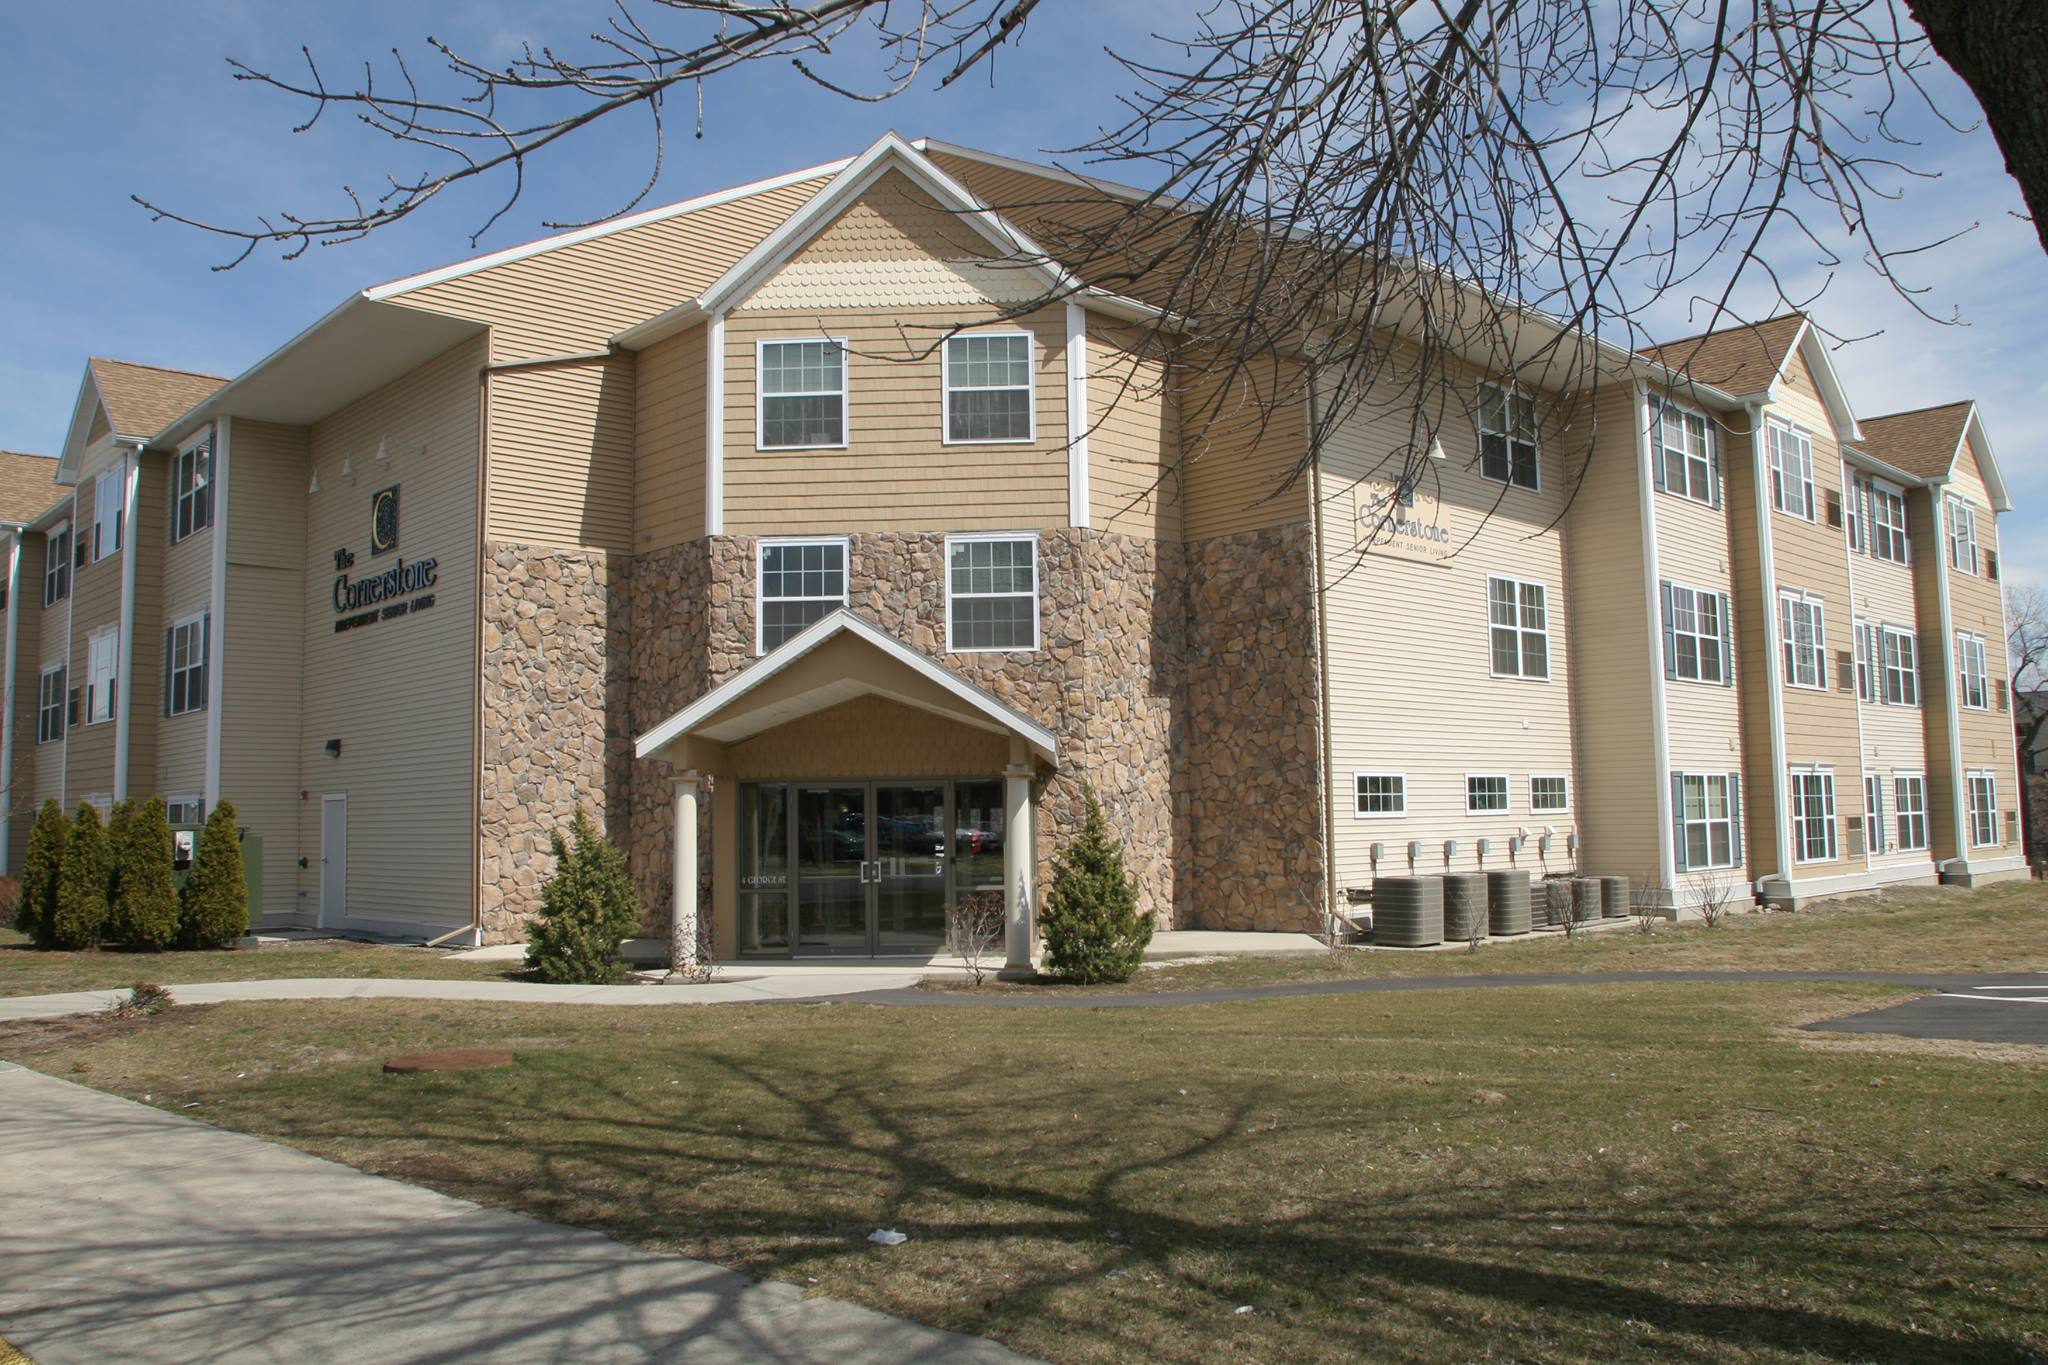 Cornerstone Senior Living Apartments for 55 and over, Green Island, NY, safe and secure apartments overlooking the Mohawk River